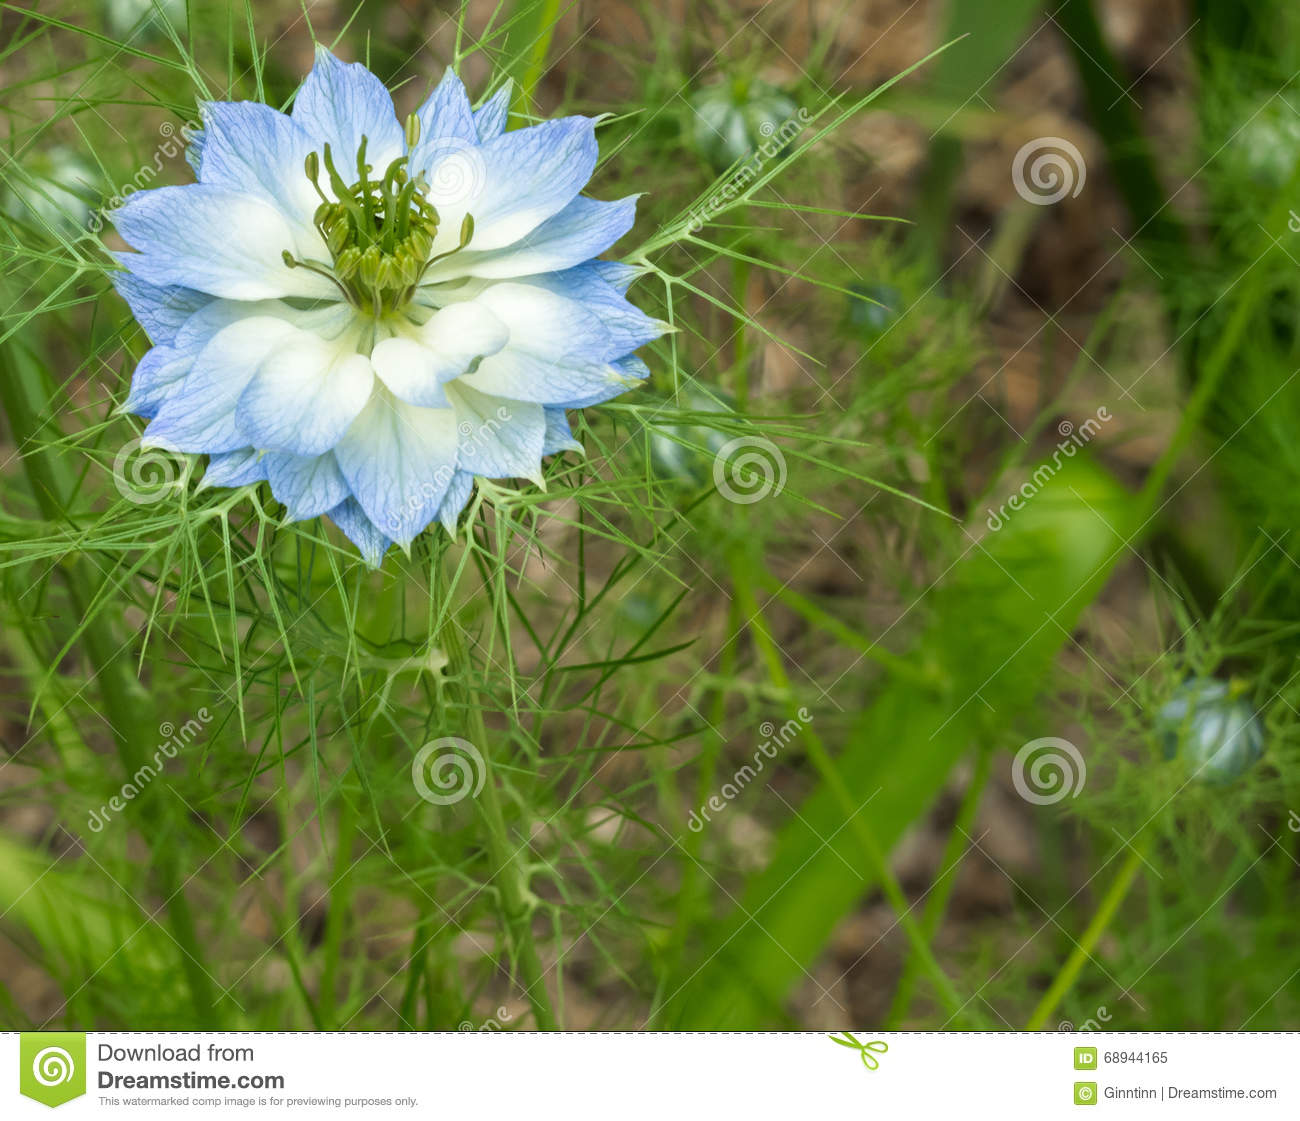 Blue and white love in a mist flower stock image image of single download blue and white love in a mist flower stock image image of single mightylinksfo